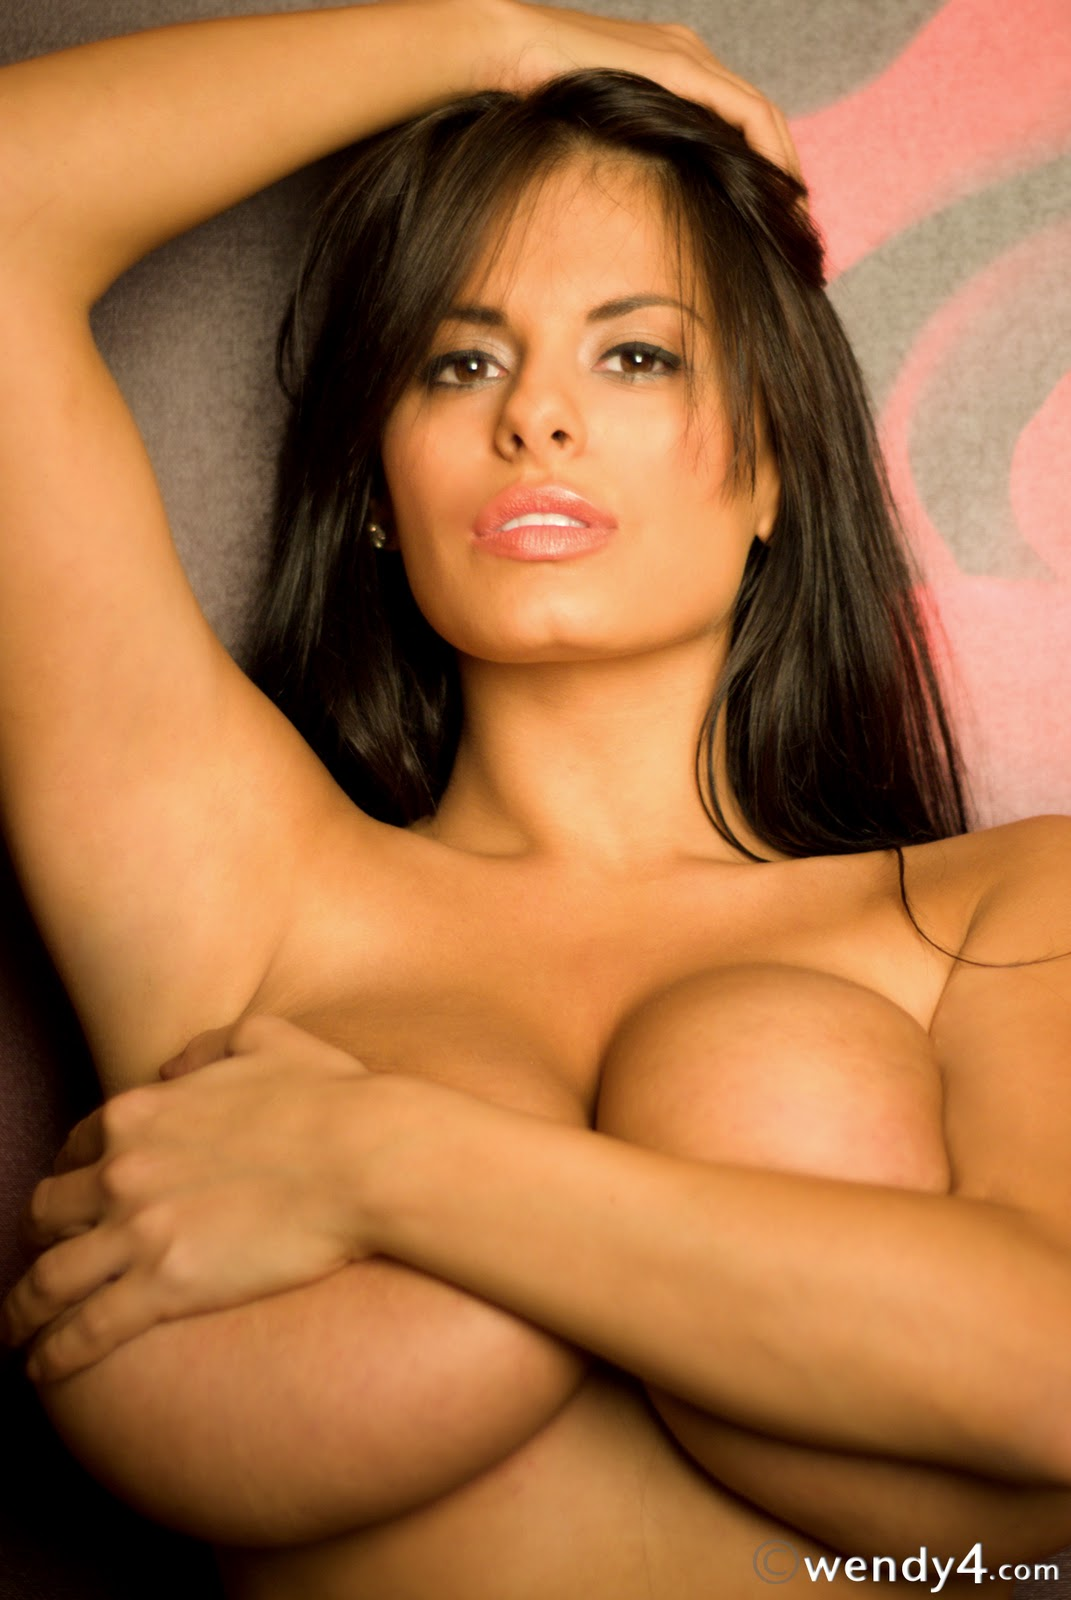 Wendy Fiore Topless Naked Sey Hot Big Boobs